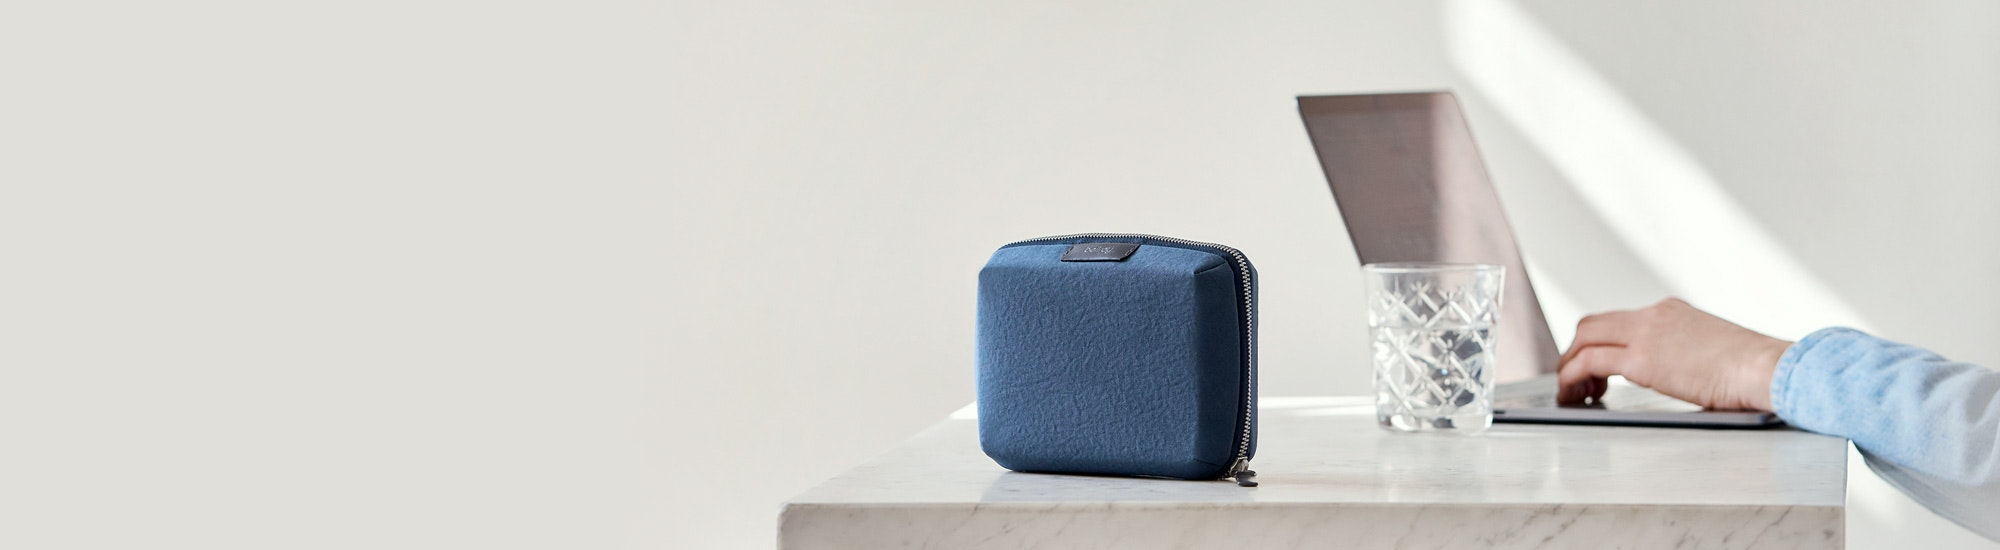 Bellroy Corporate Gifting